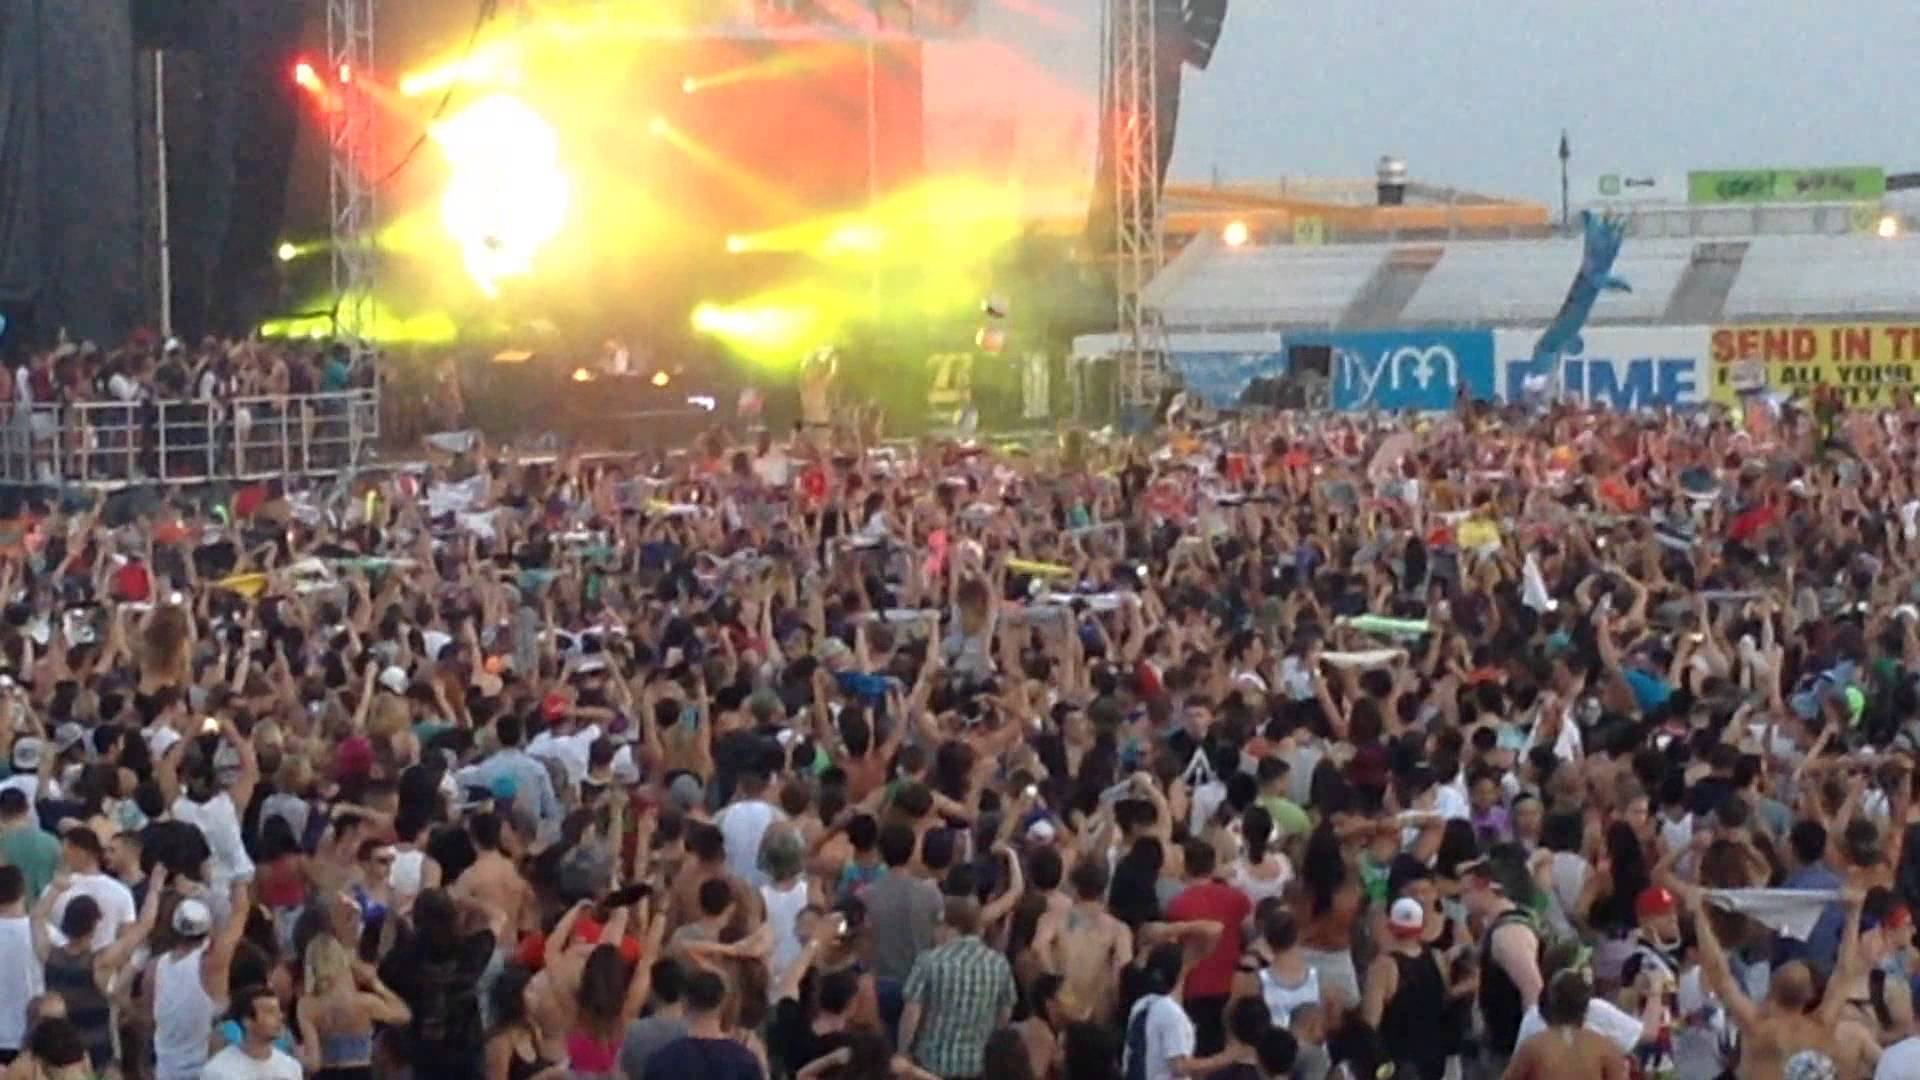 The Mad Decent Block Party rages through Brooklyn